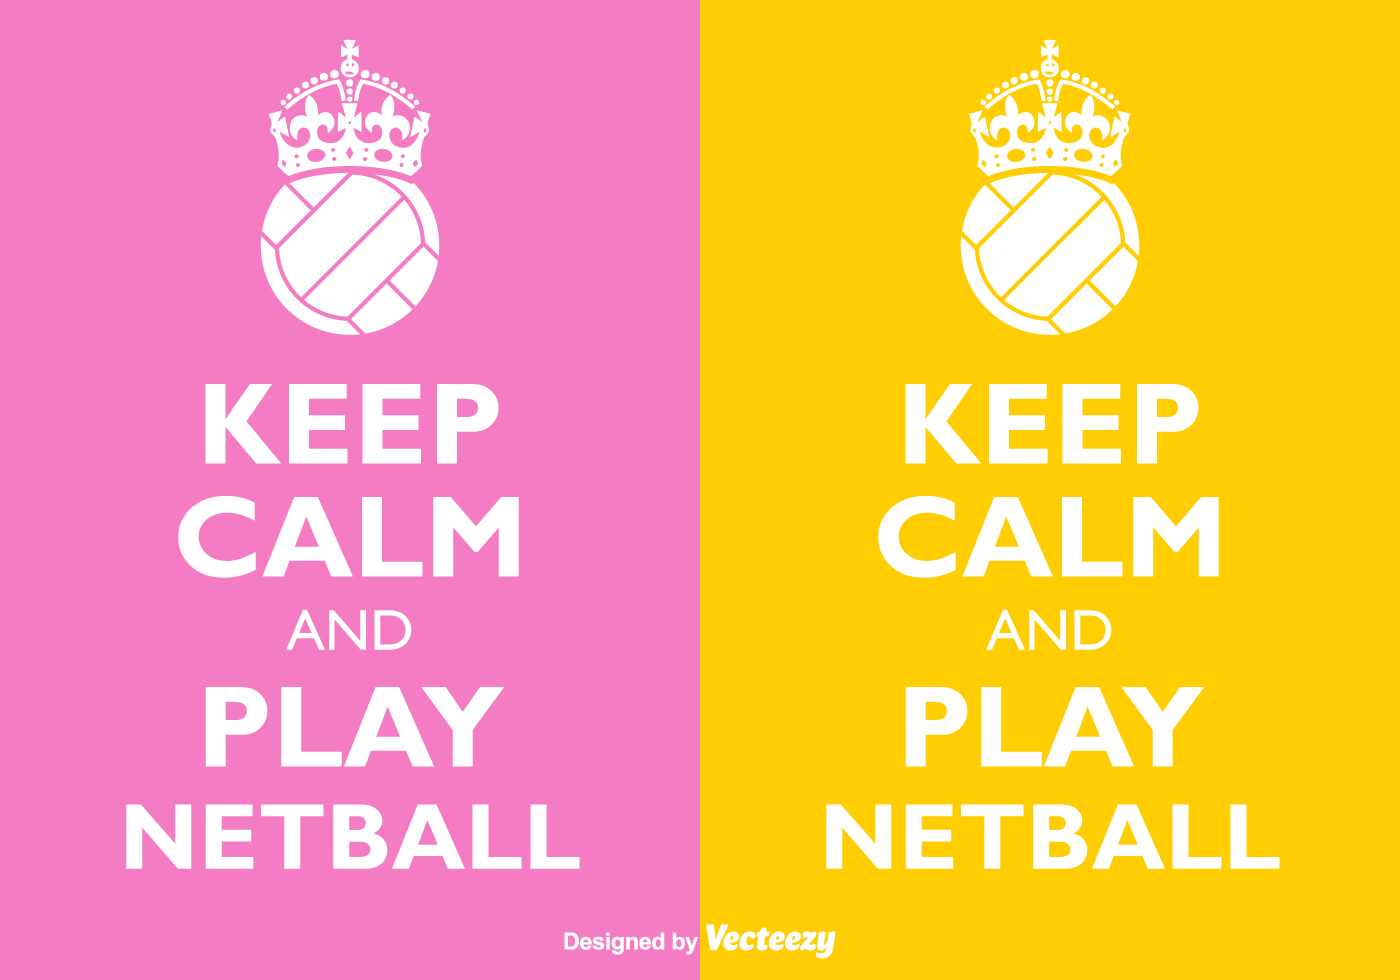 Vector Keep Calm And Play Netball - Download Free Vector Art, Stock ...